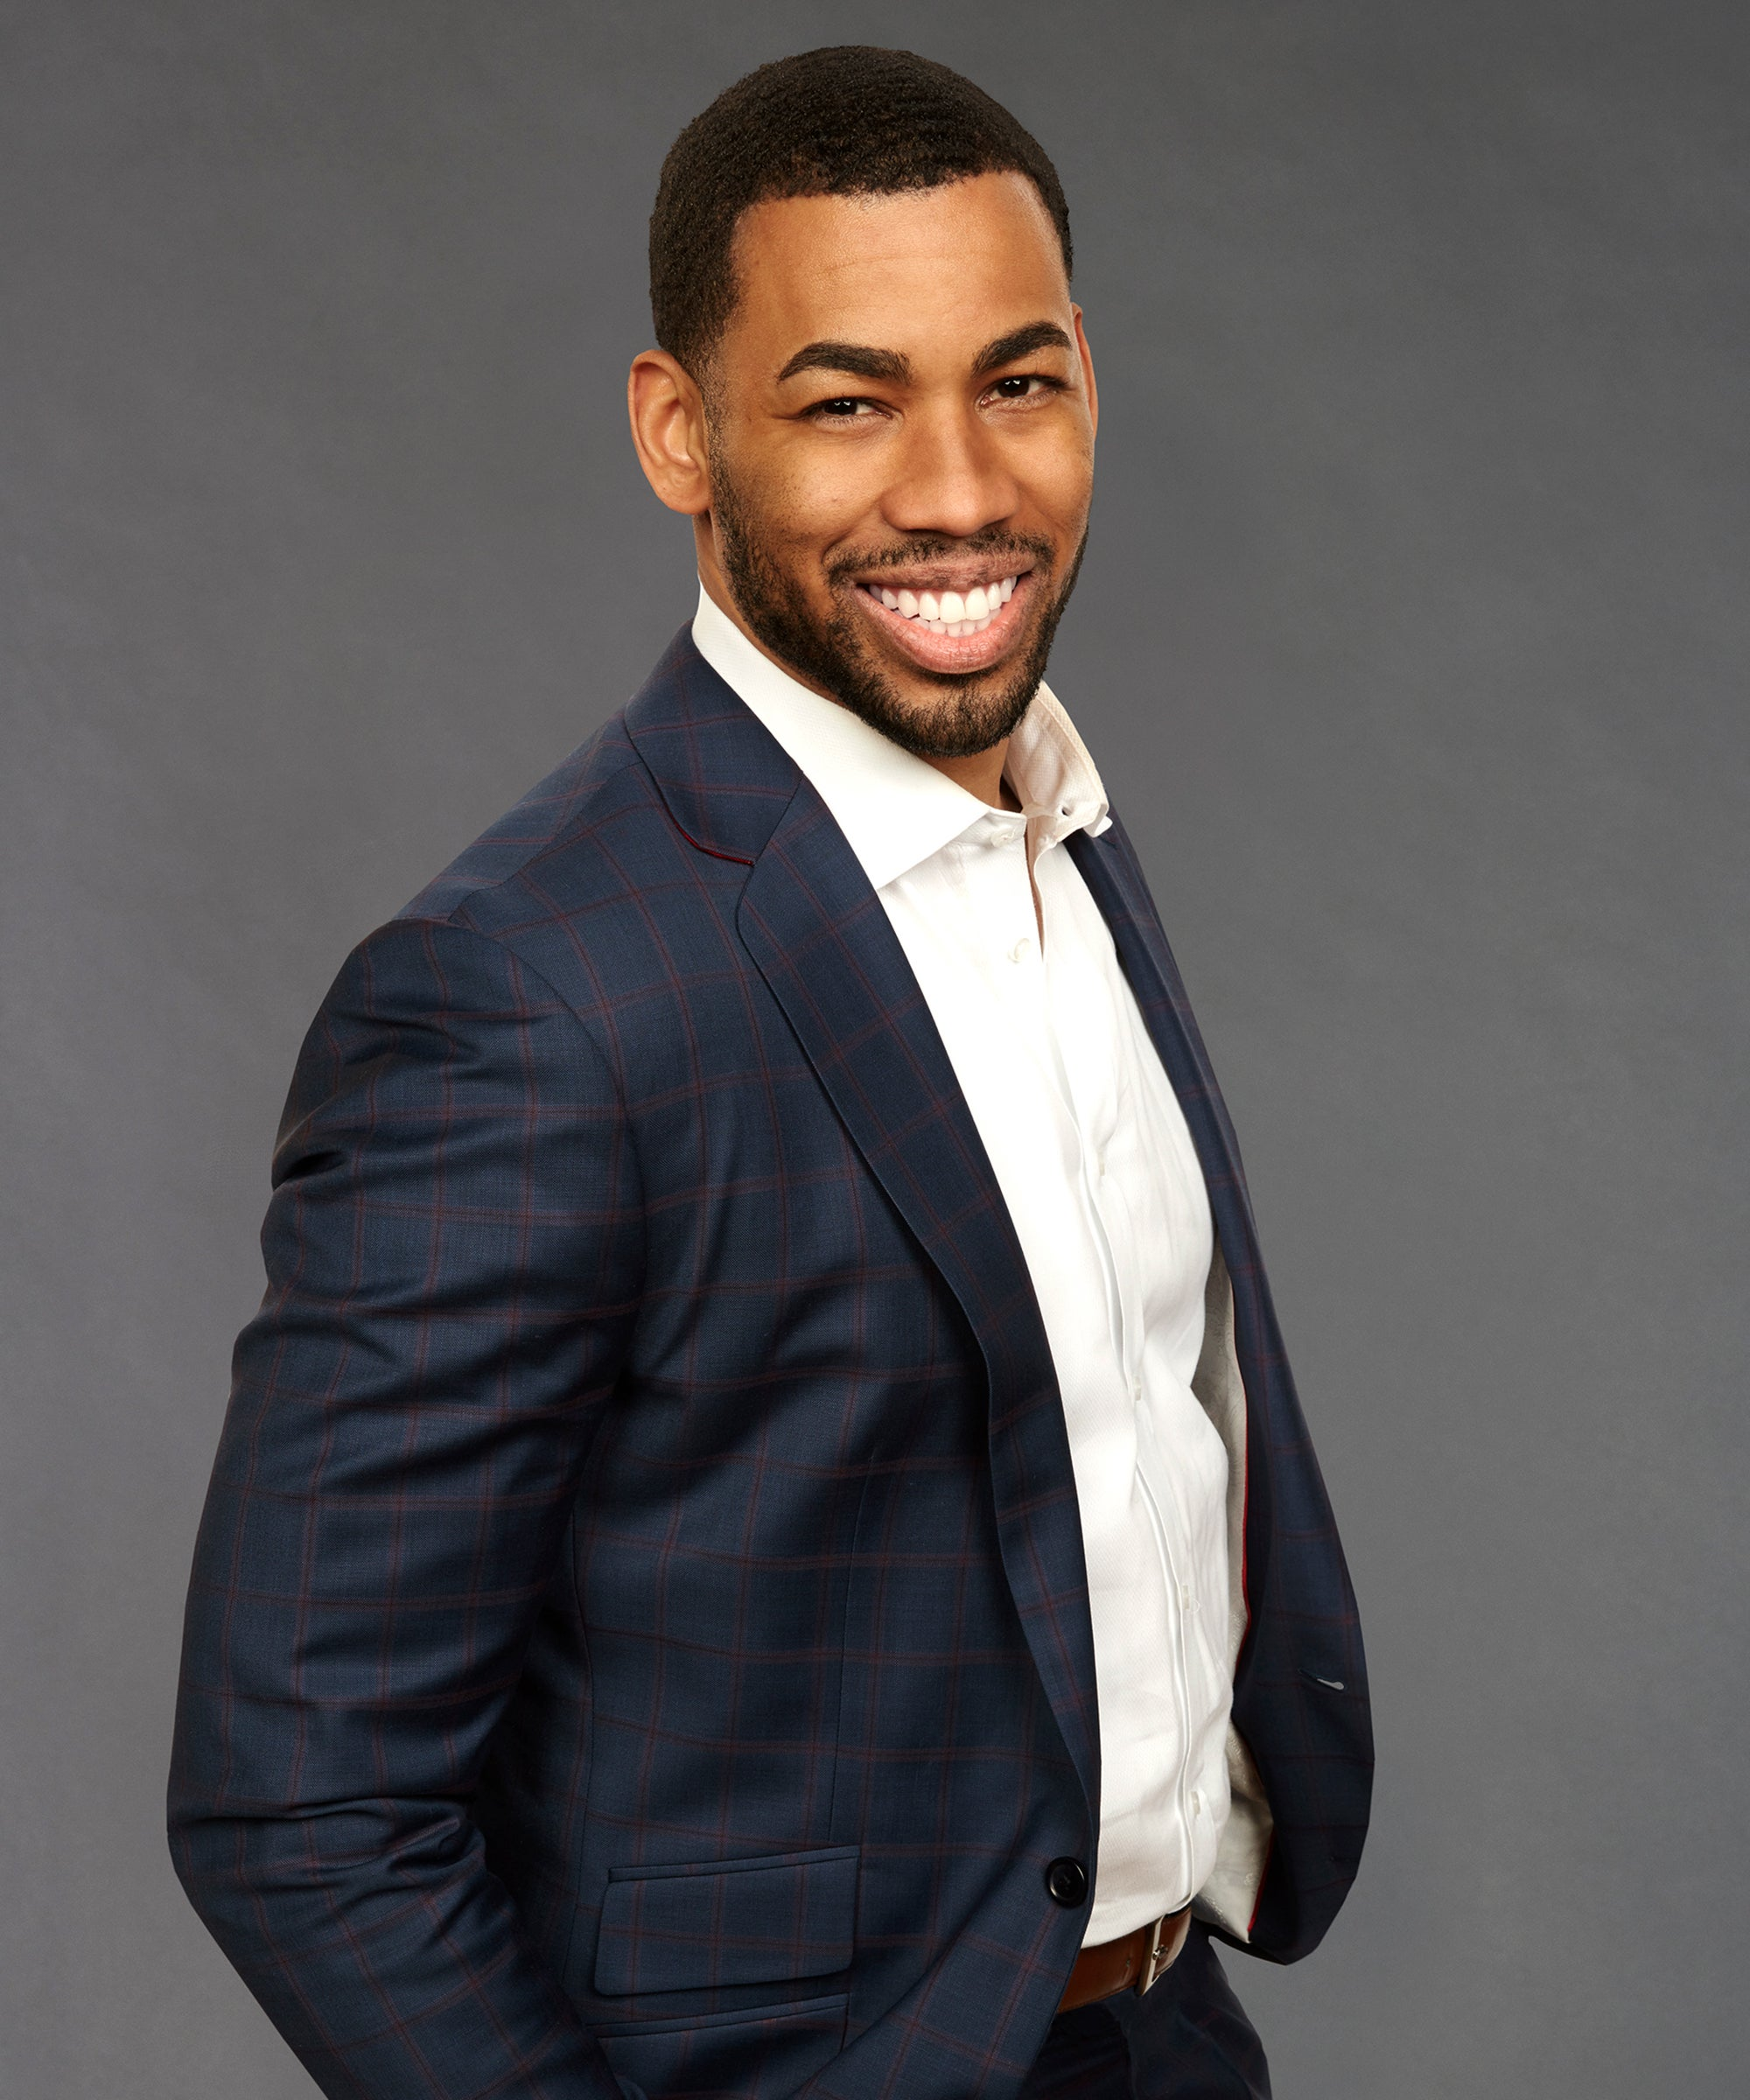 Peter Is Great, But How Is Mike Johnson Not The New Bachelor?